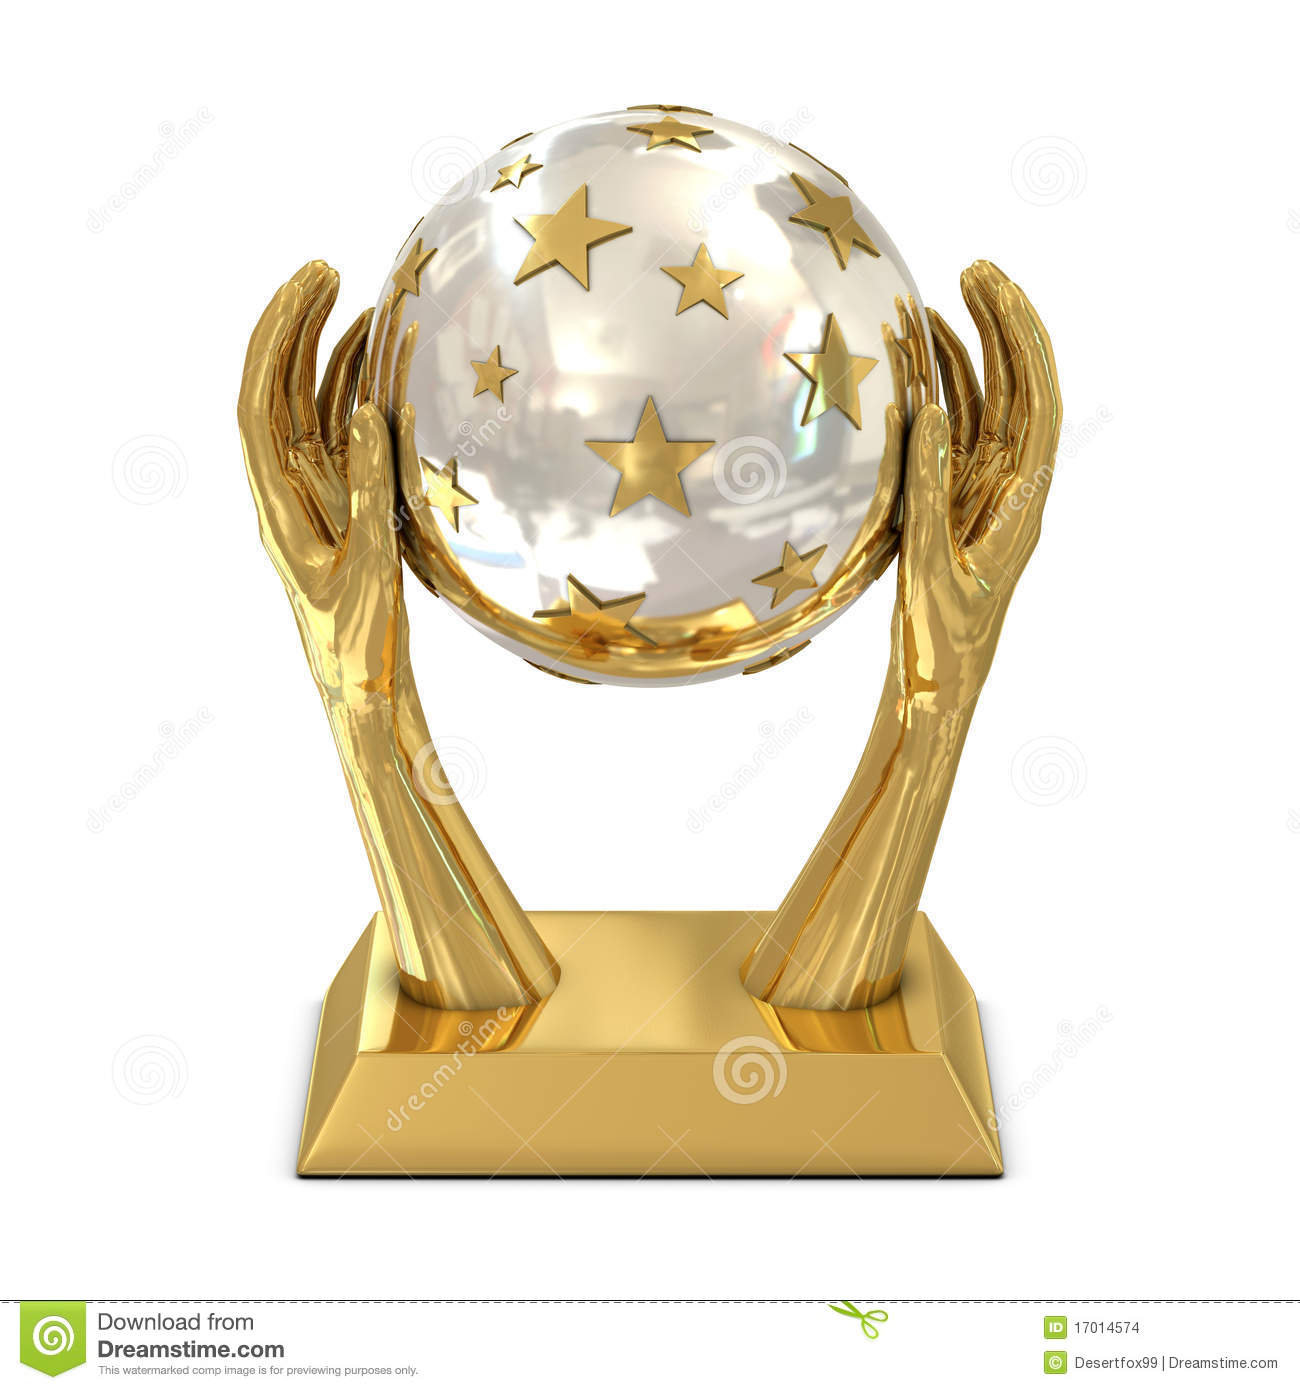 More similar stock images of ` Golden award trophy with stars and ...